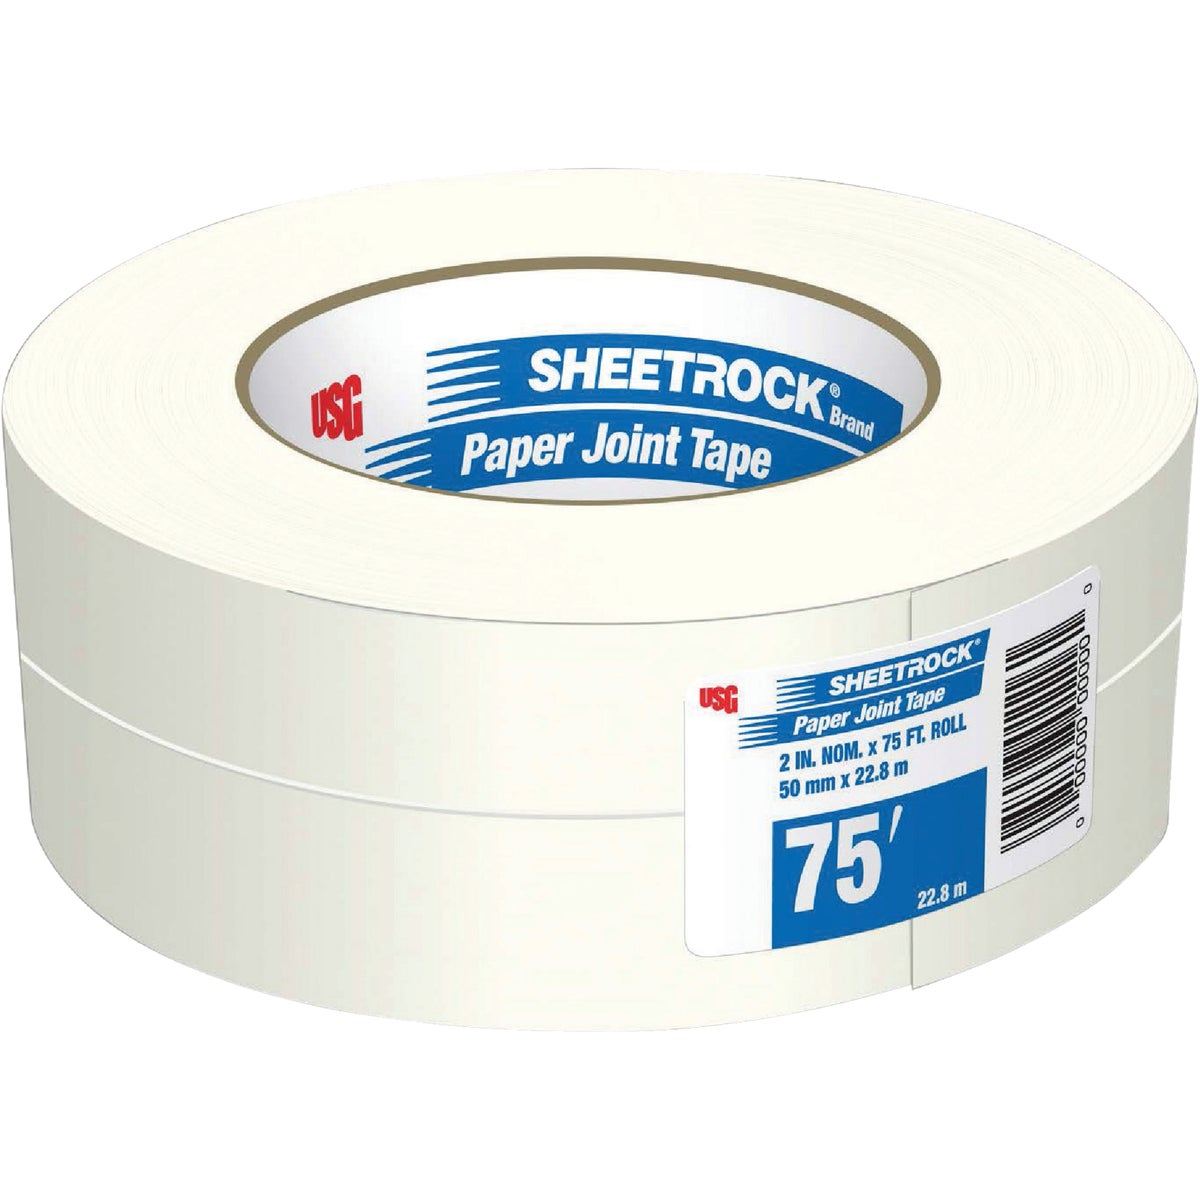 75' DRYWALL PAPER TAPE - FDW6620-U by Saint Gobain